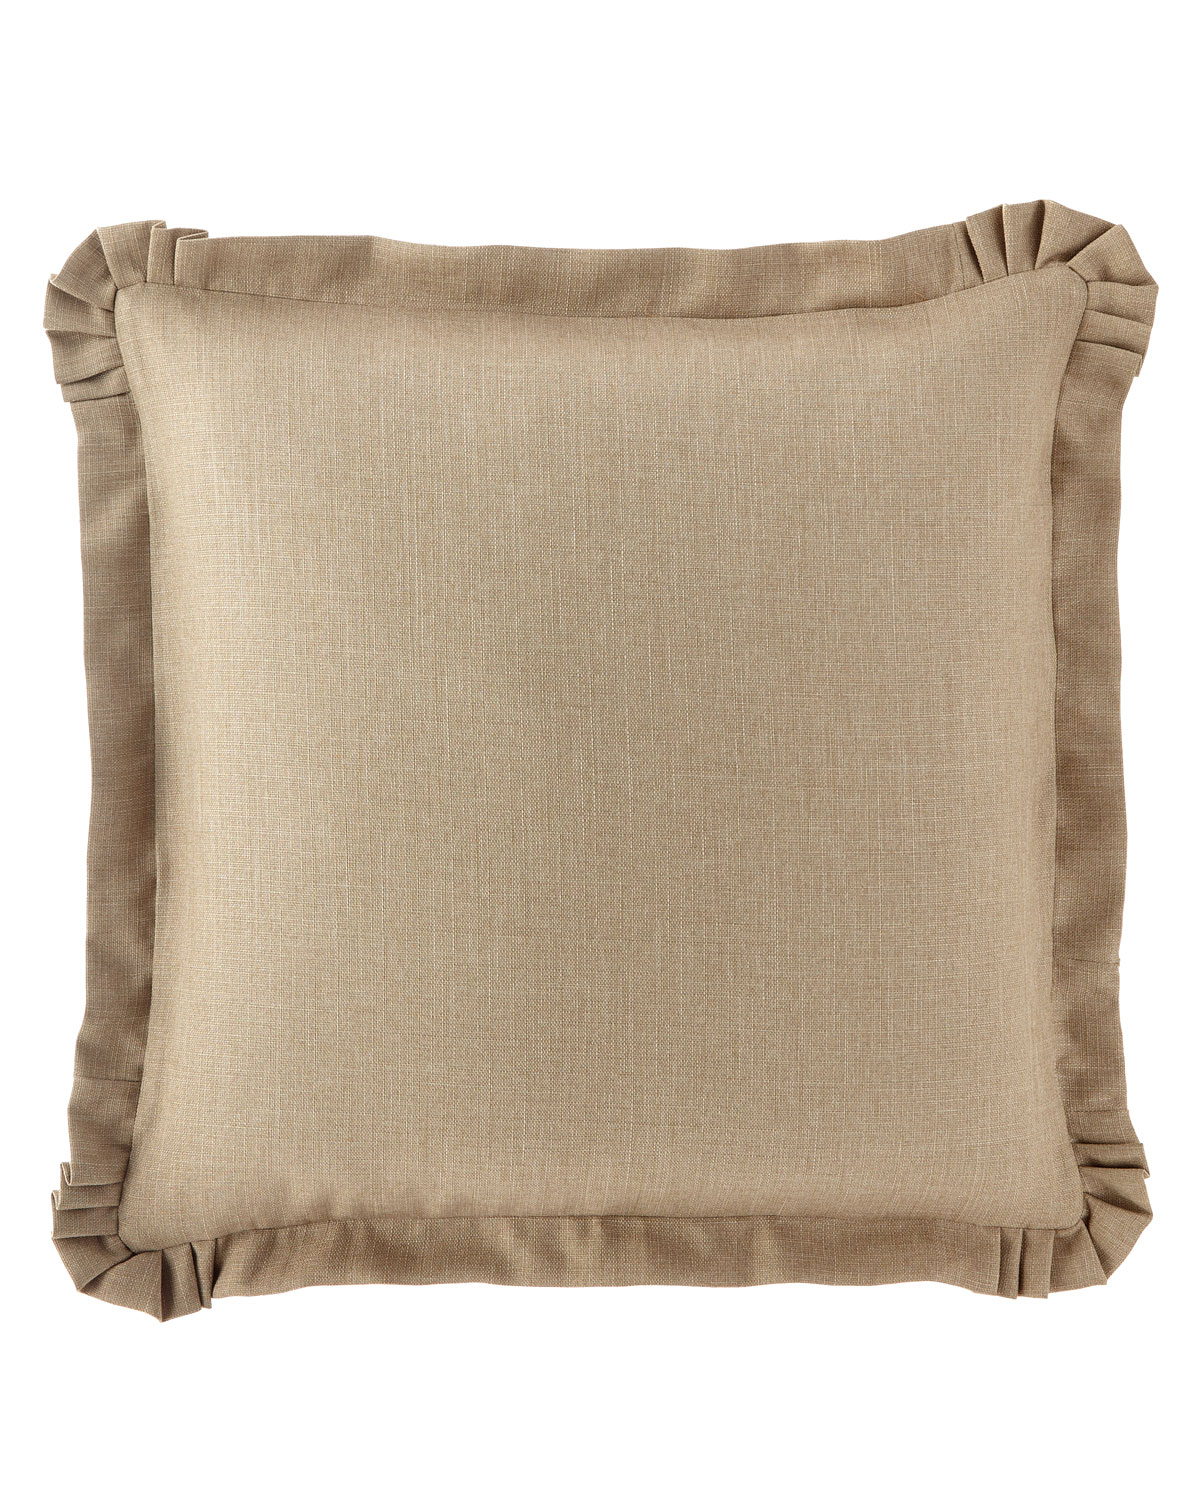 Sherry Kline Home After Glow Solid European Sham